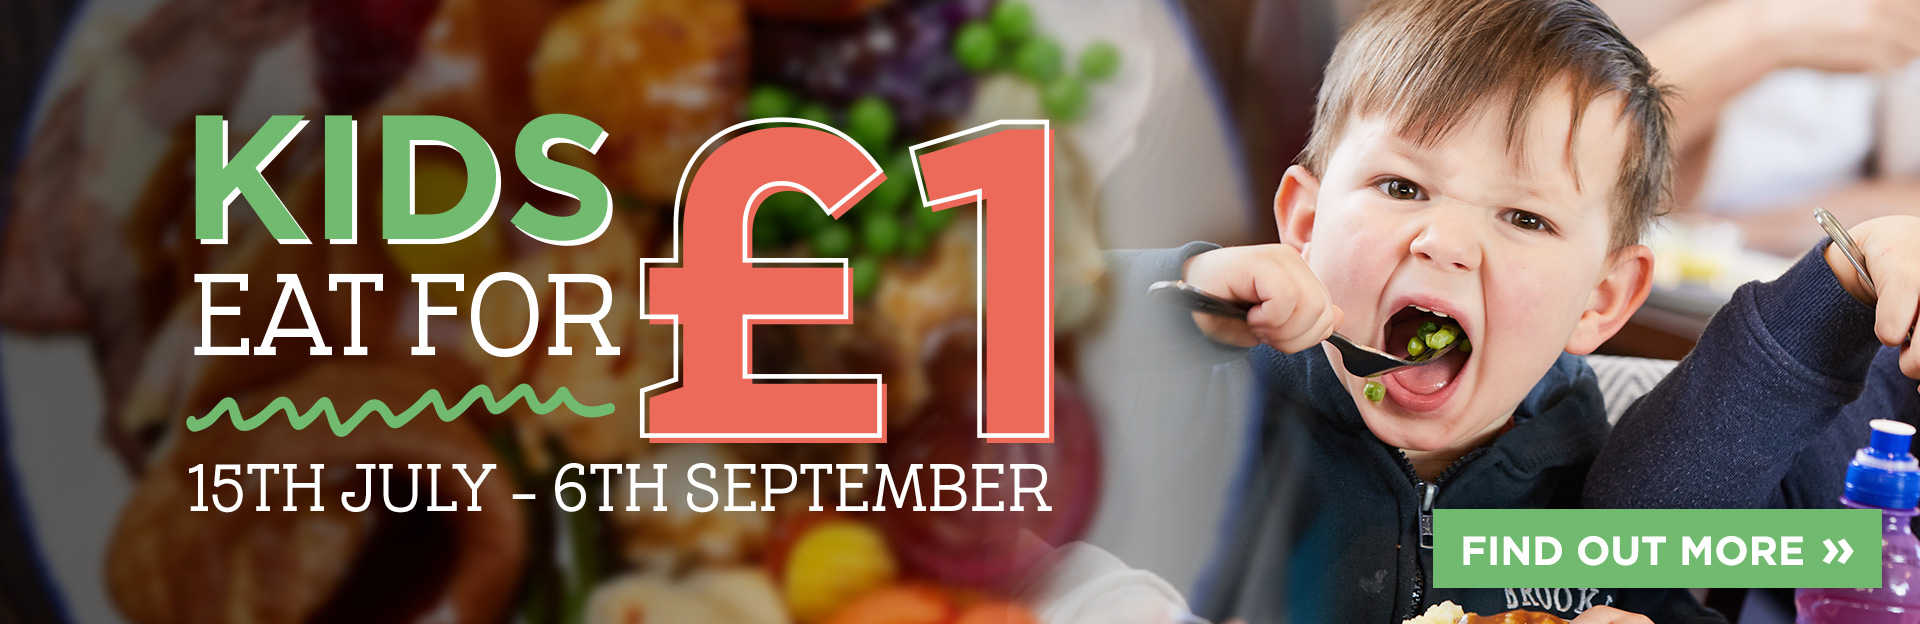 Kids Eat for £1 at The Wilbury